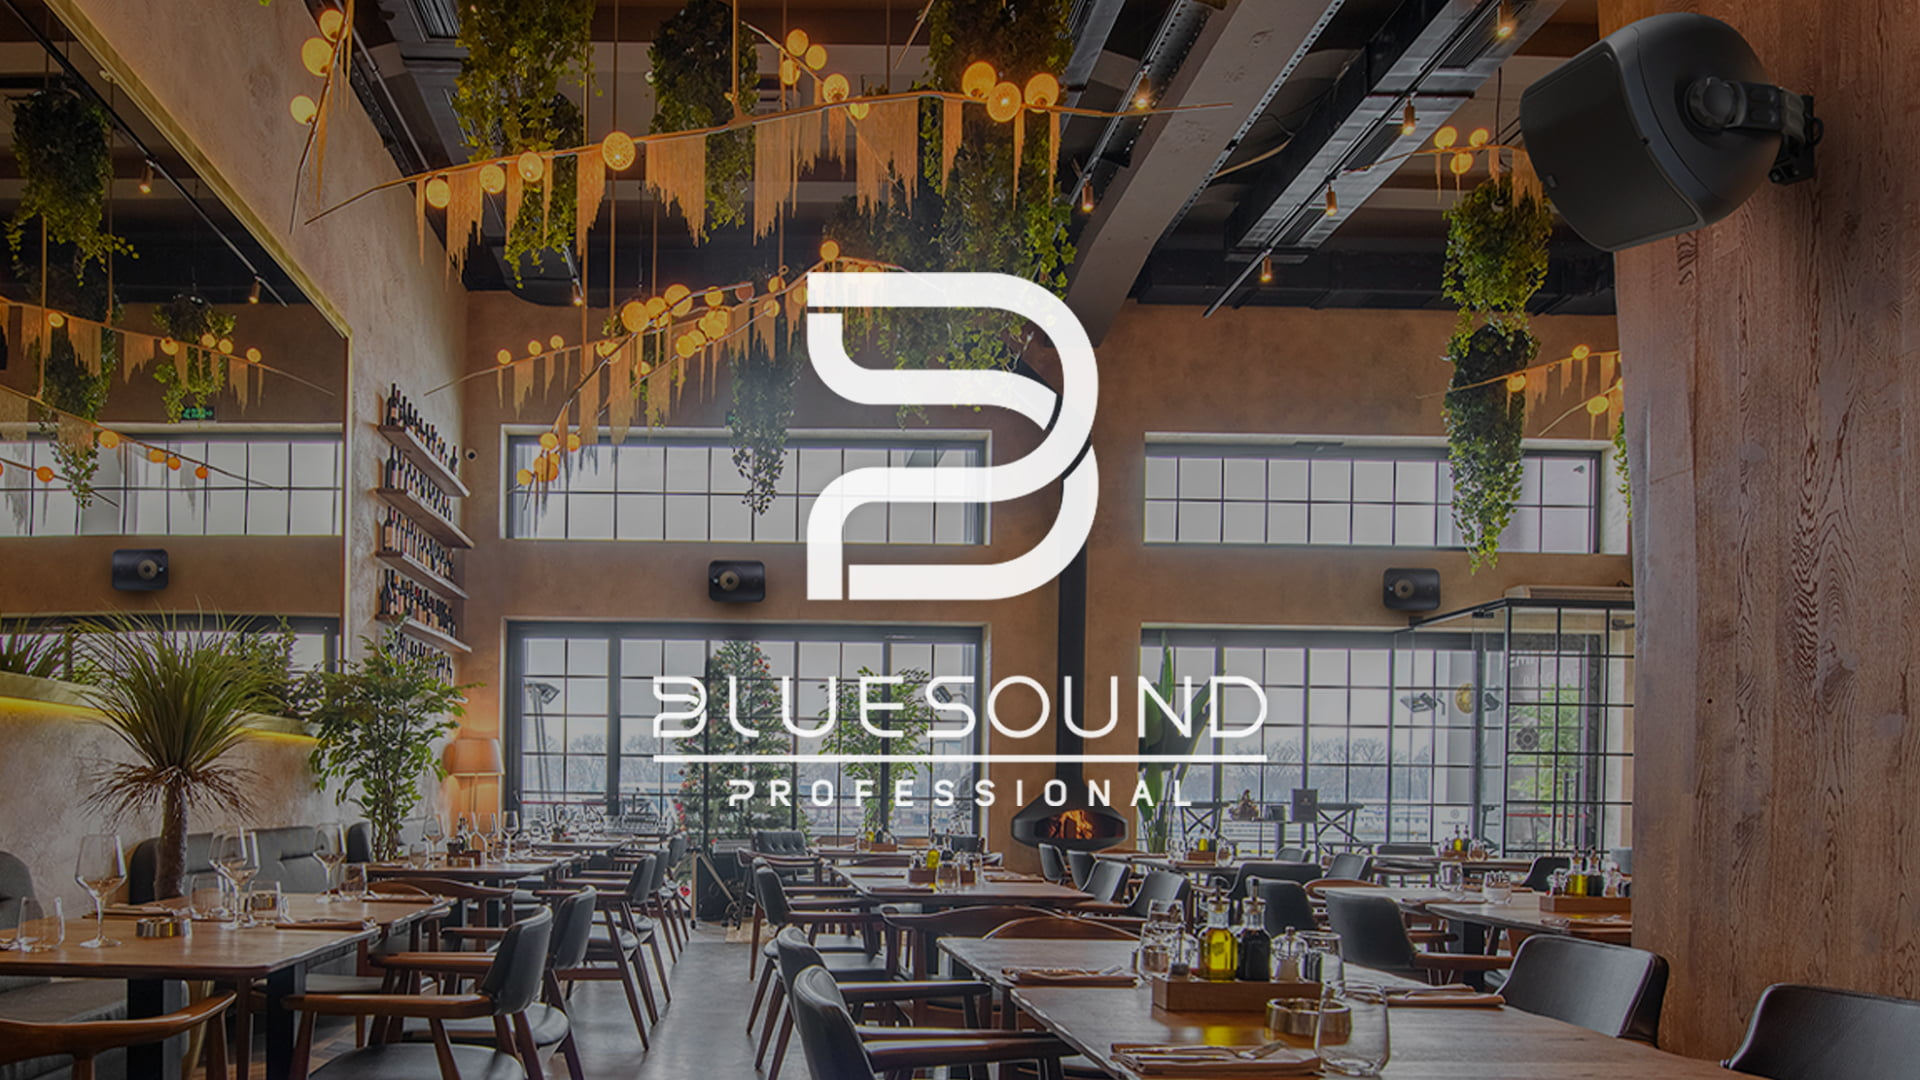 Bluesound Professional BSP1000 and BSP500 Loudspeakers Are Now Shipping